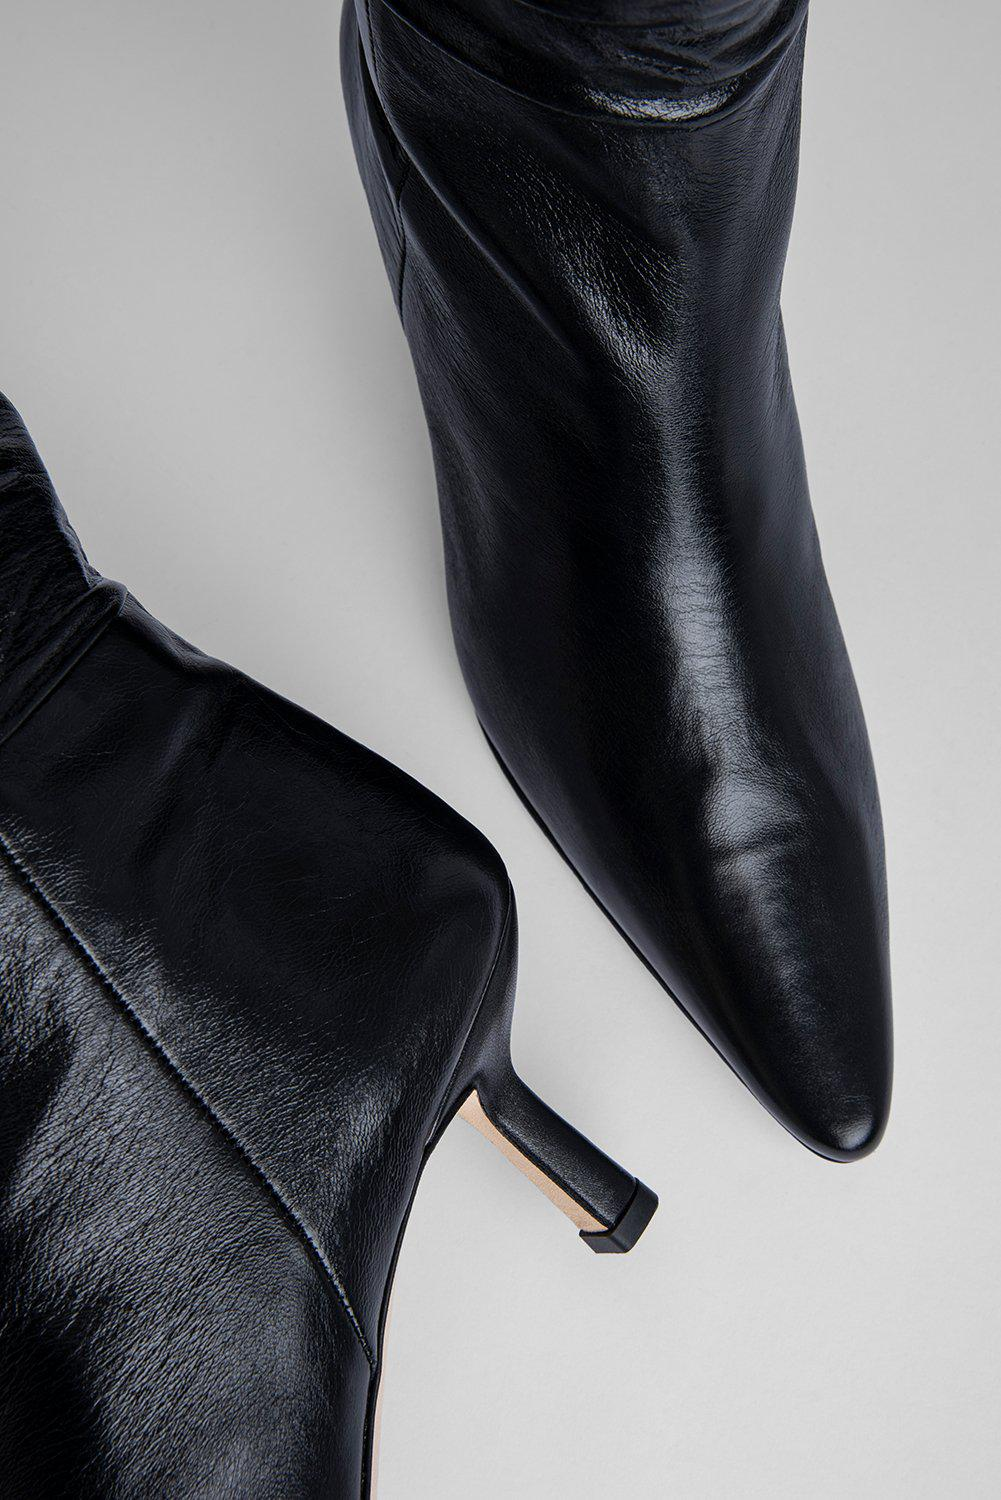 Gwen Black Creased Leather 2